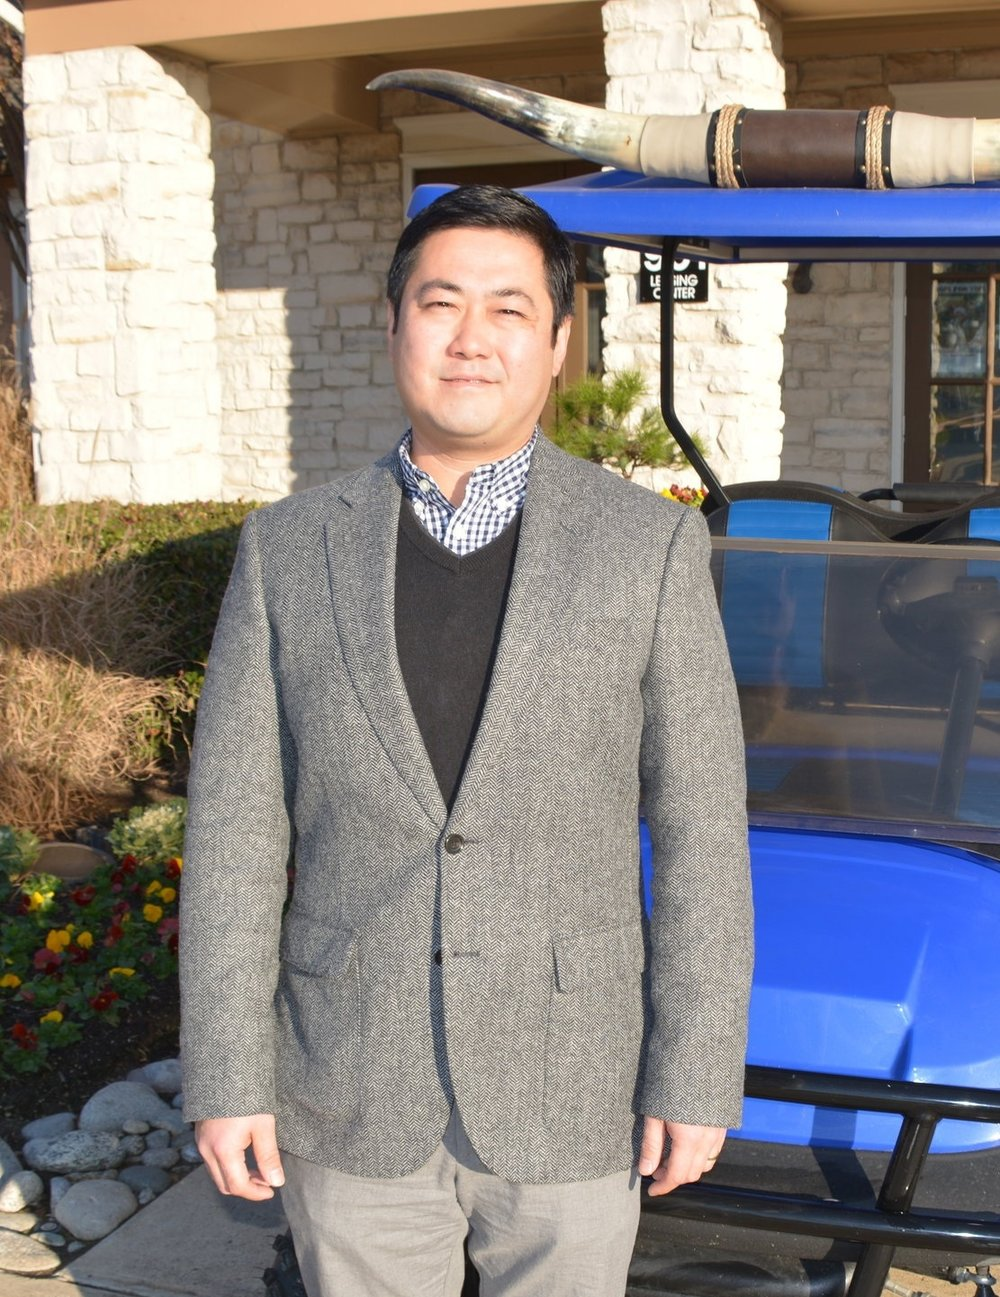 Yao WangConstruction Manager - Yao is an experienced construction project manager with high-level knowledge of building codes, construction trades, industry standards, and municipal zoning laws. He has managed projects from end-to-end, including bidding, change orders, punchlist, and closeout. Yao also specializes in estimating, resource allocation, and client relations. His diverse experience also includes a background in interactive marketing and KPI formation and evaluation. Yao holds multiple degrees, including an MBA from the National University of Singapore.